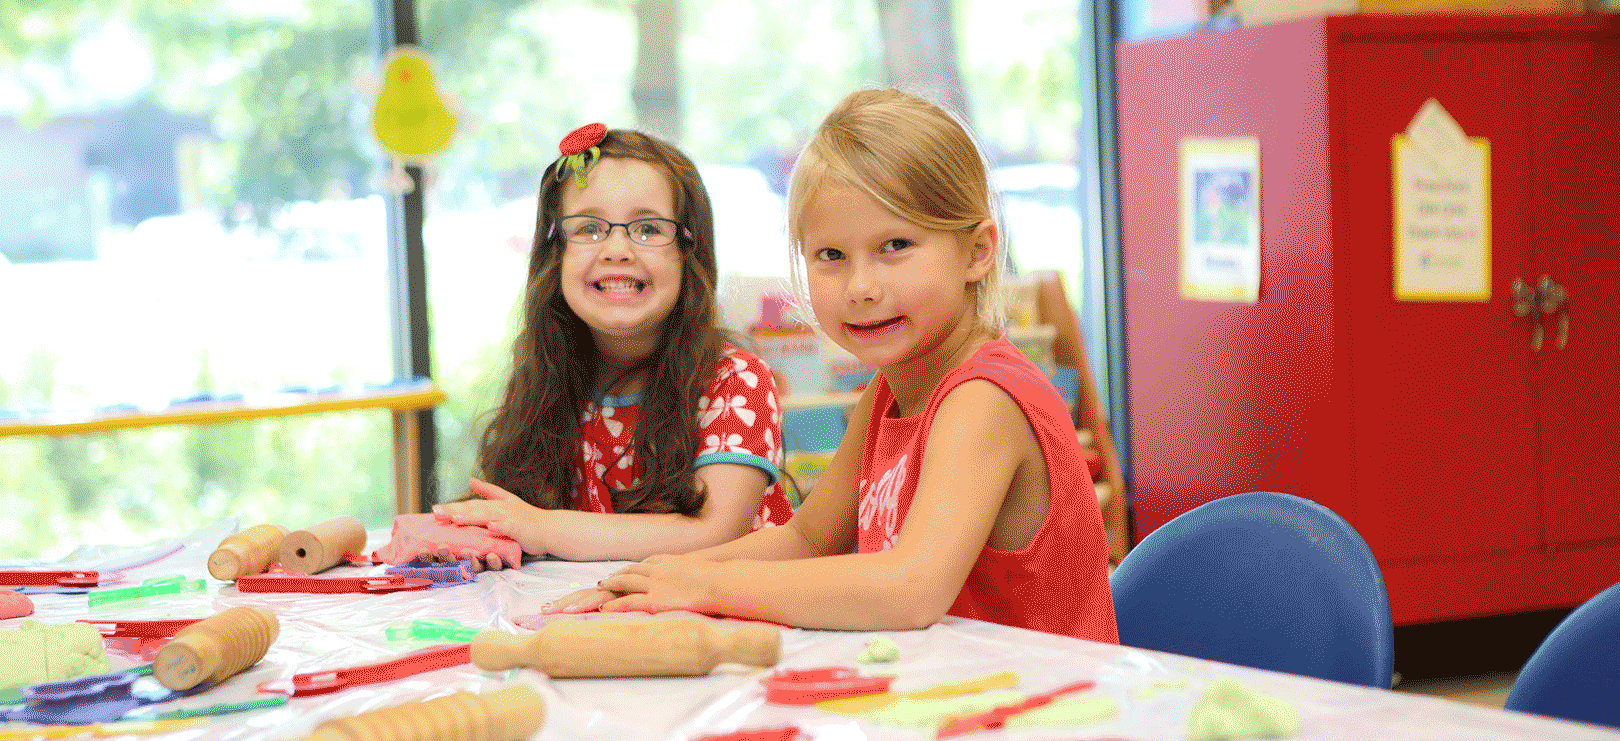 two young girls smiling while at Family Museum Summer camp activity table